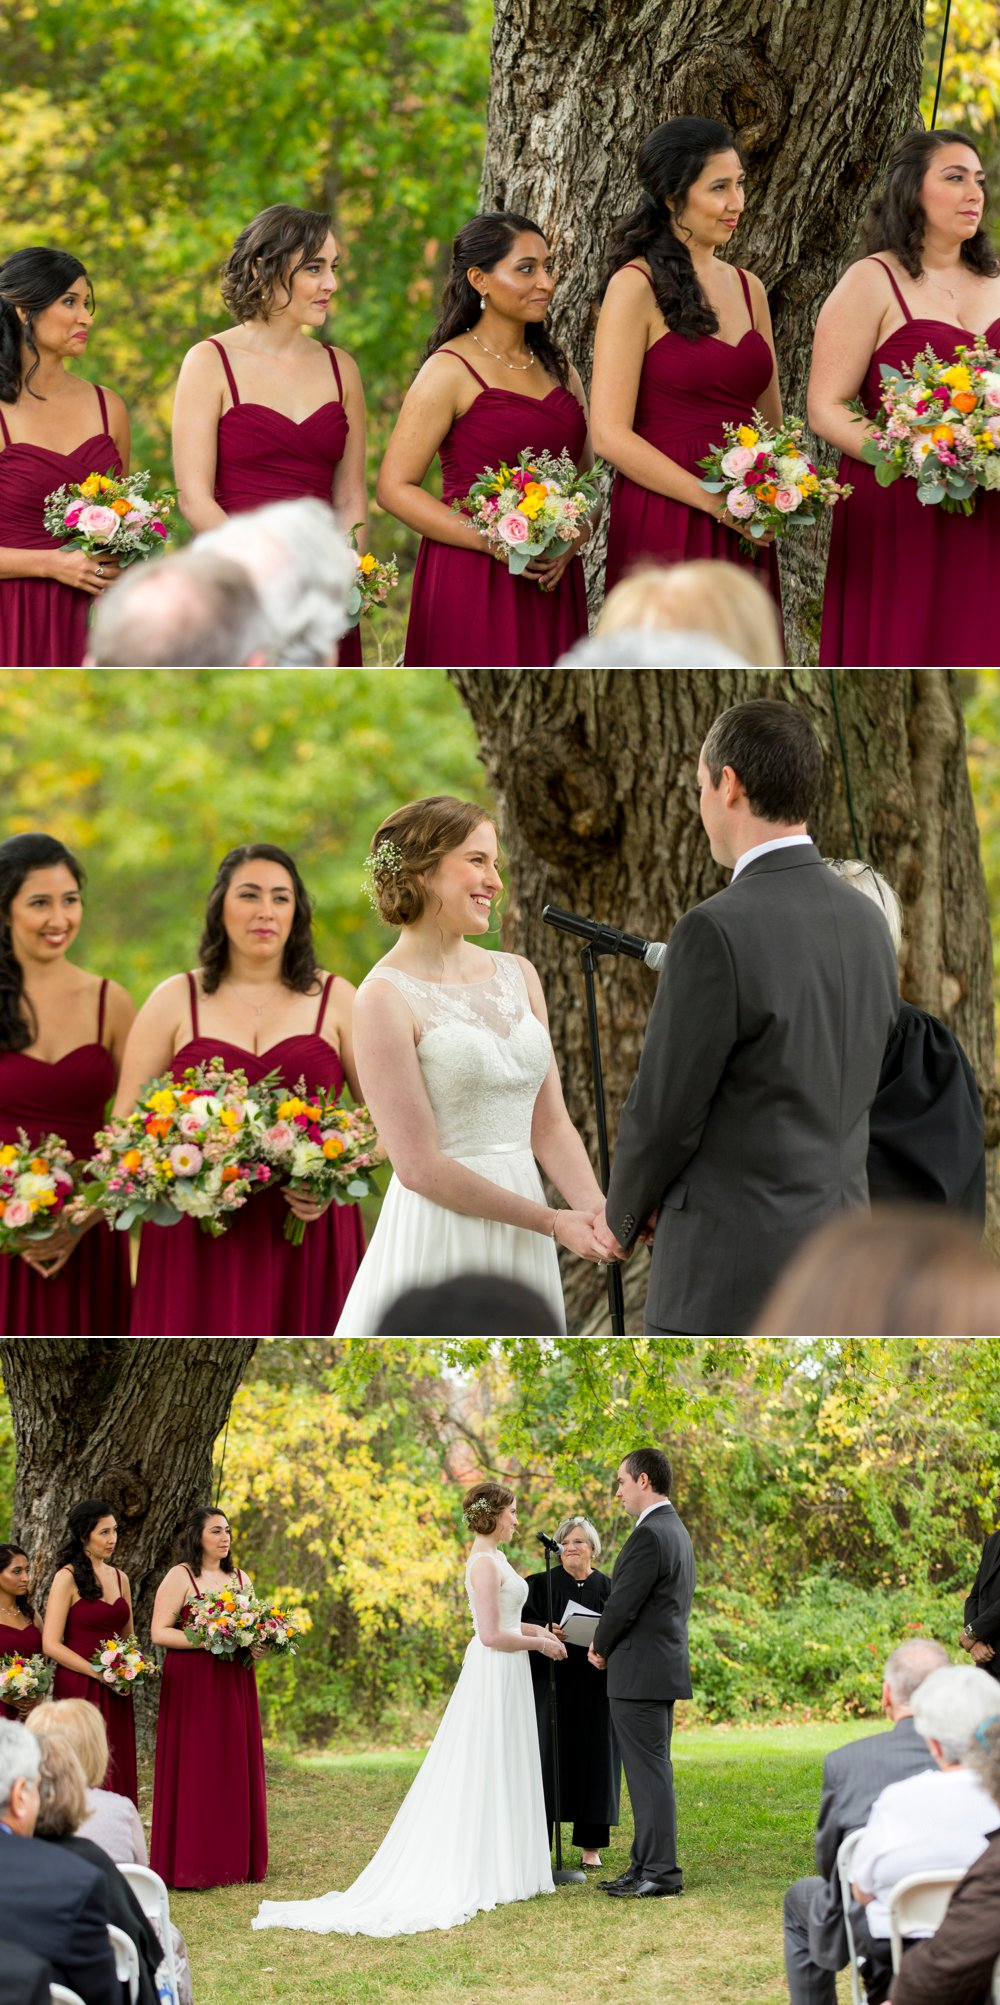 SomerbyJonesPhotography_HellenicCenterWedding_TheHellenicCenter_0024.jpg